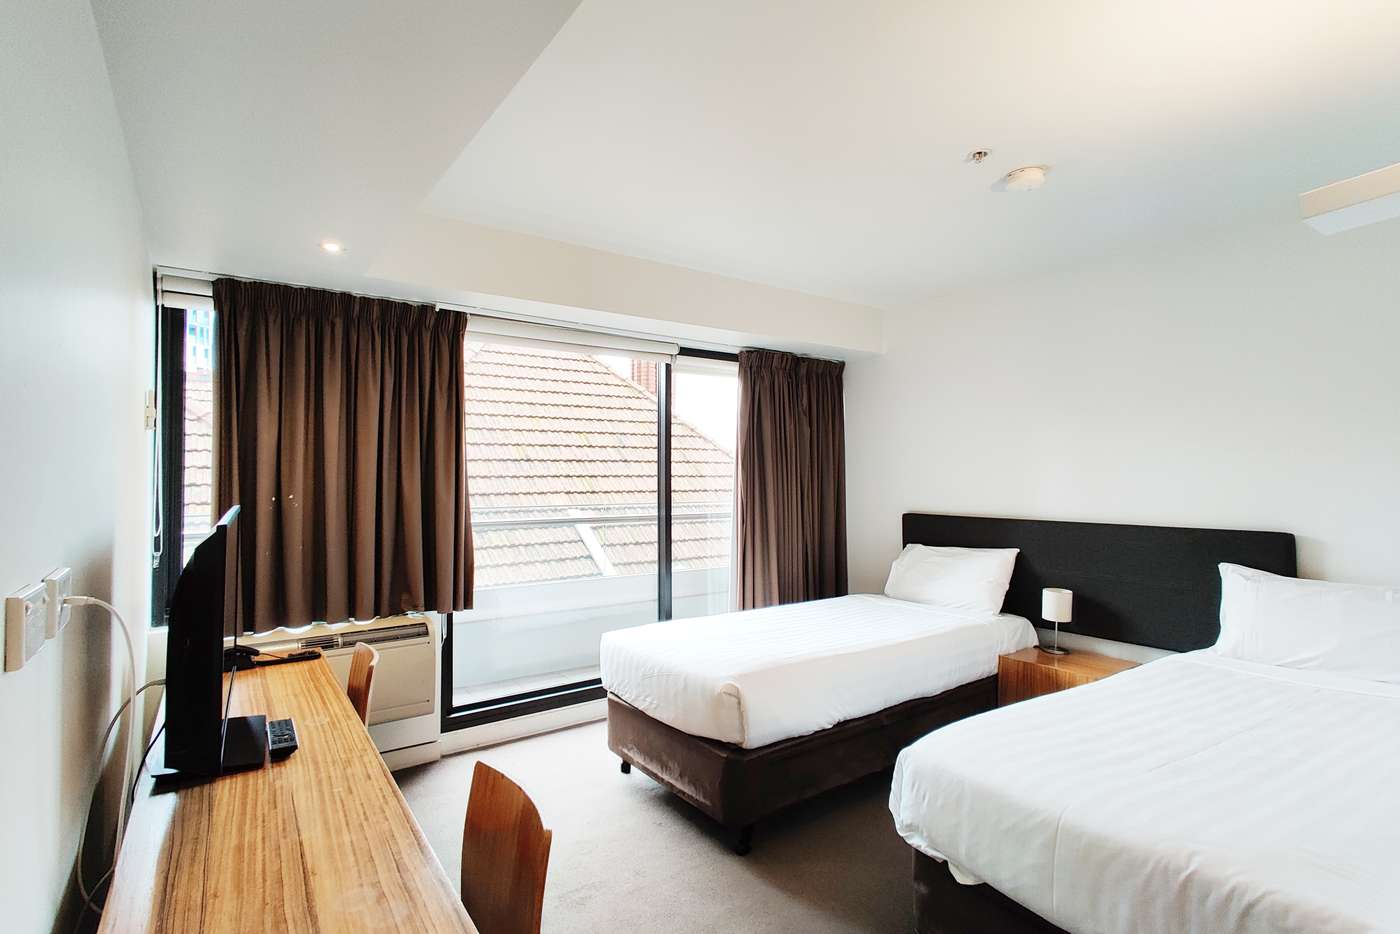 Main view of Homely apartment listing, 424/572 St Kilda Road, Melbourne VIC 3004